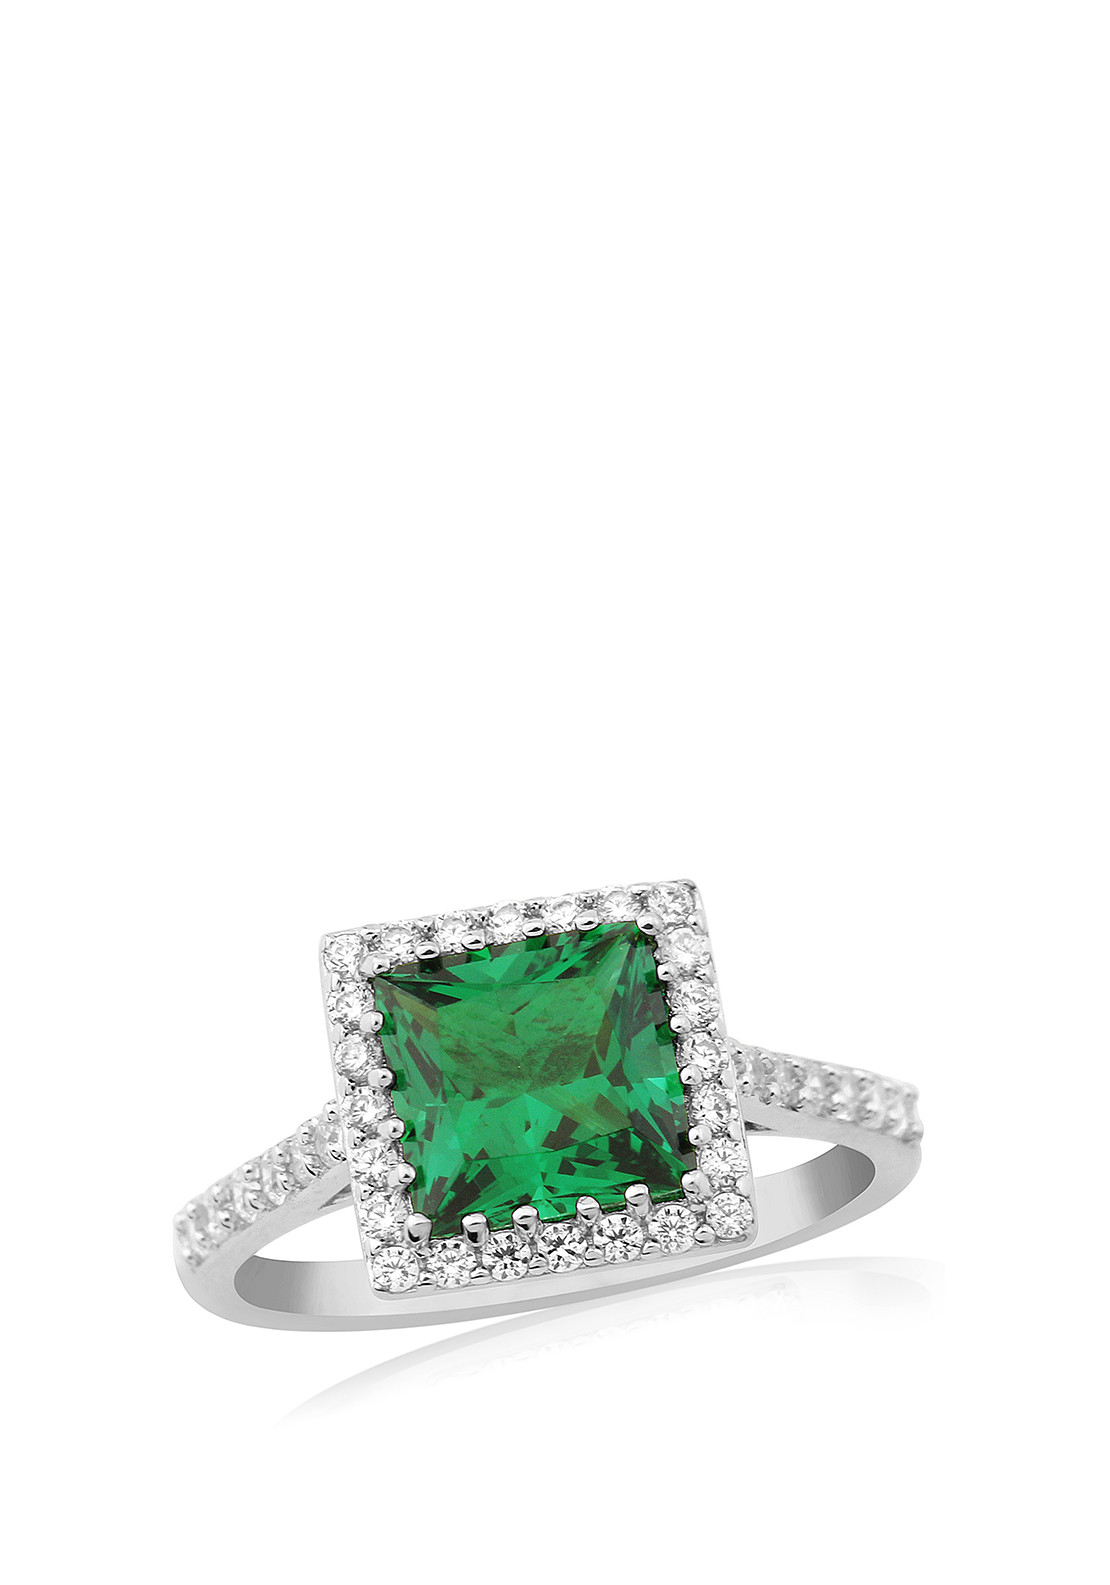 Waterford Crystal Faux Emerald and Pave Silver Ring, Large